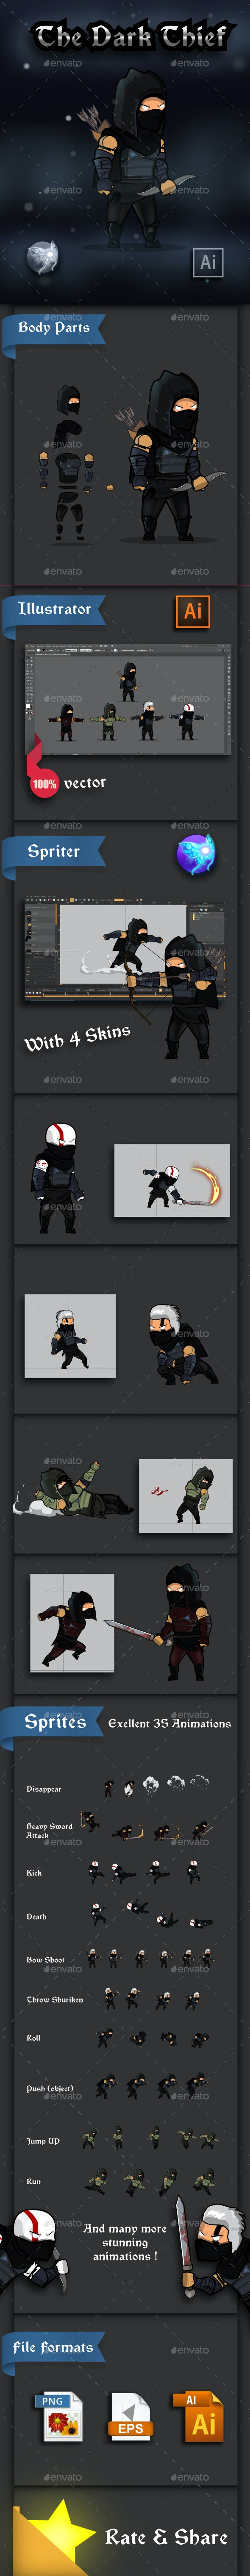 The Dark Thief Game Character Sprites - Sprites Game Assets